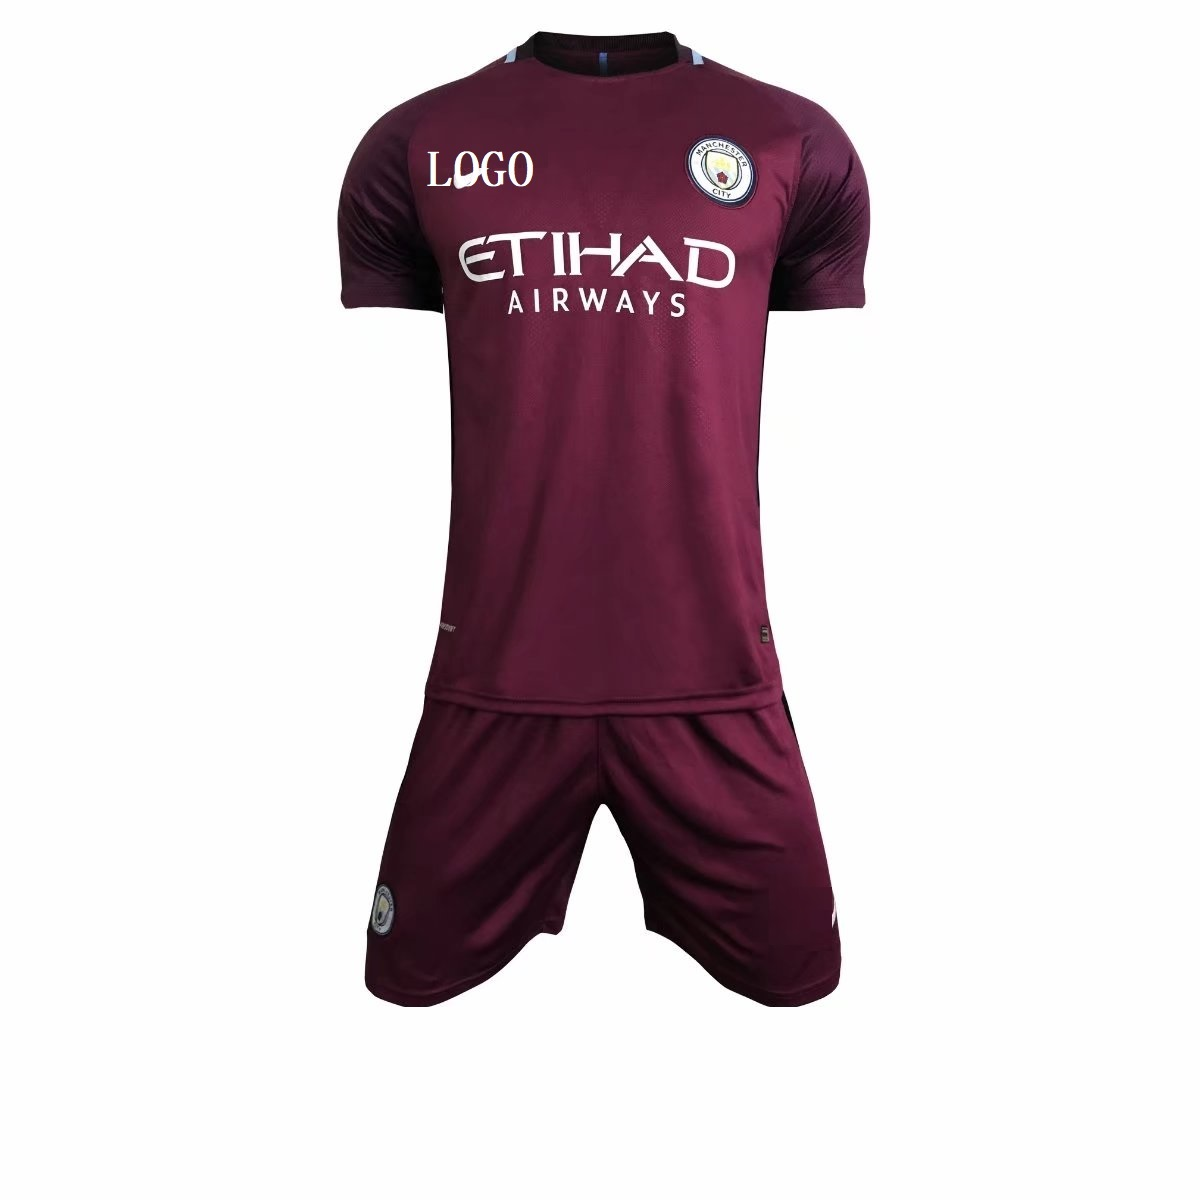 17 18 Adult Manchester City Away Purple Soccer Jersey Uniforms Men uniformes  de futbol soccer Item NO  444238 4ccc464a665d8